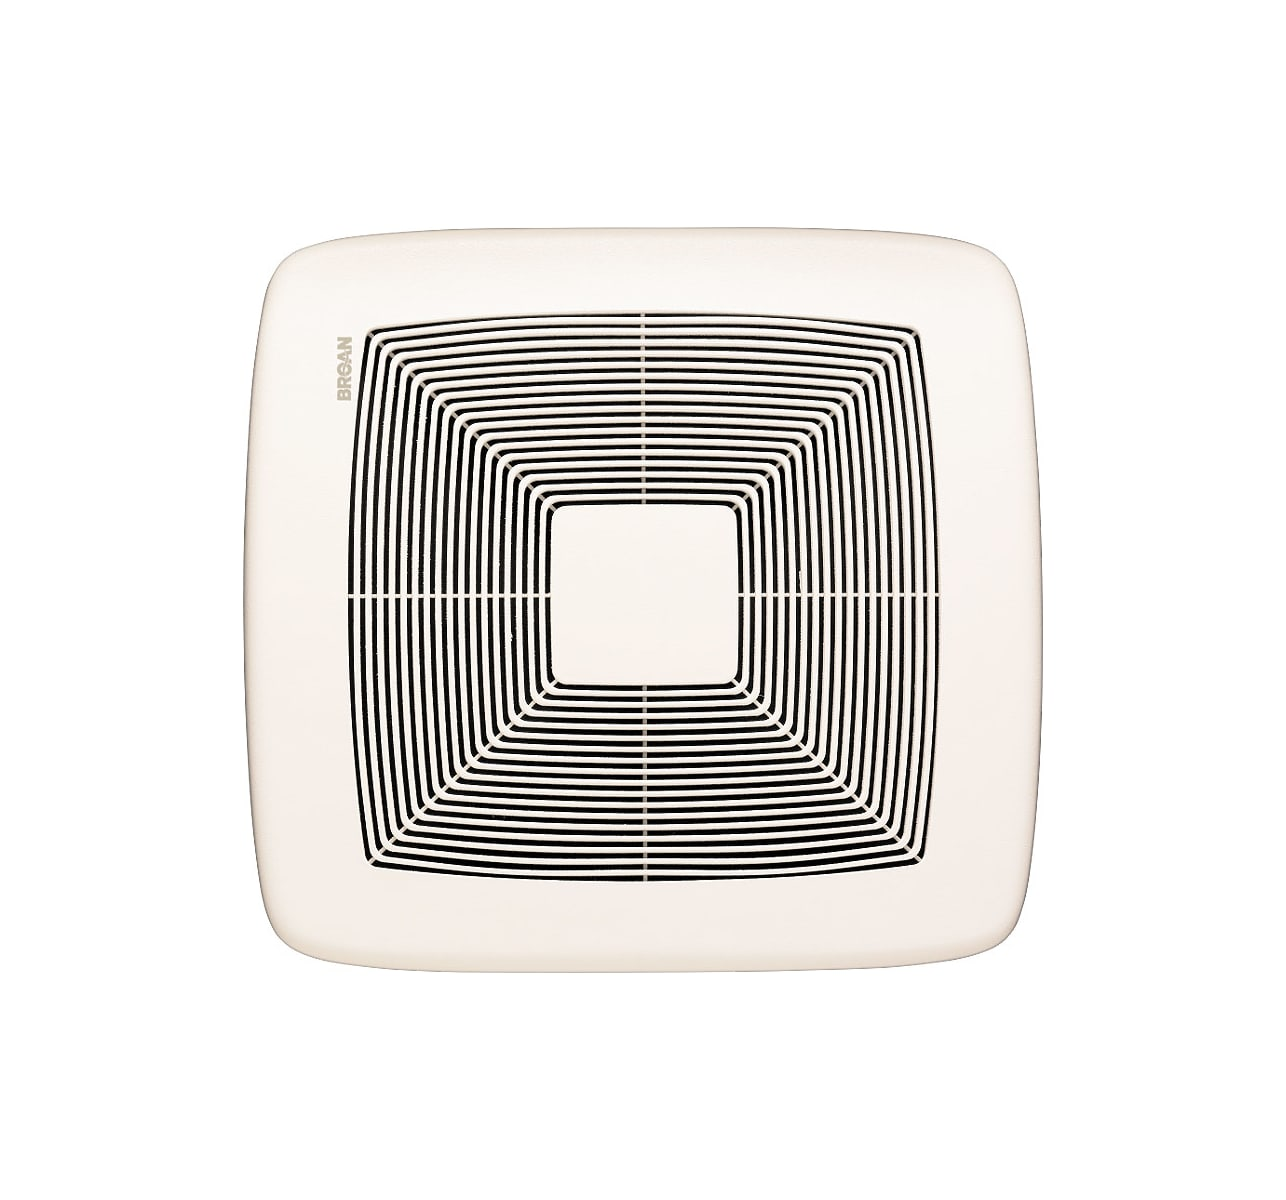 Groovy Broan Quiet Bath Fan With White Grille 150 Cfm Energy Star Certified Qtxe150 Download Free Architecture Designs Scobabritishbridgeorg